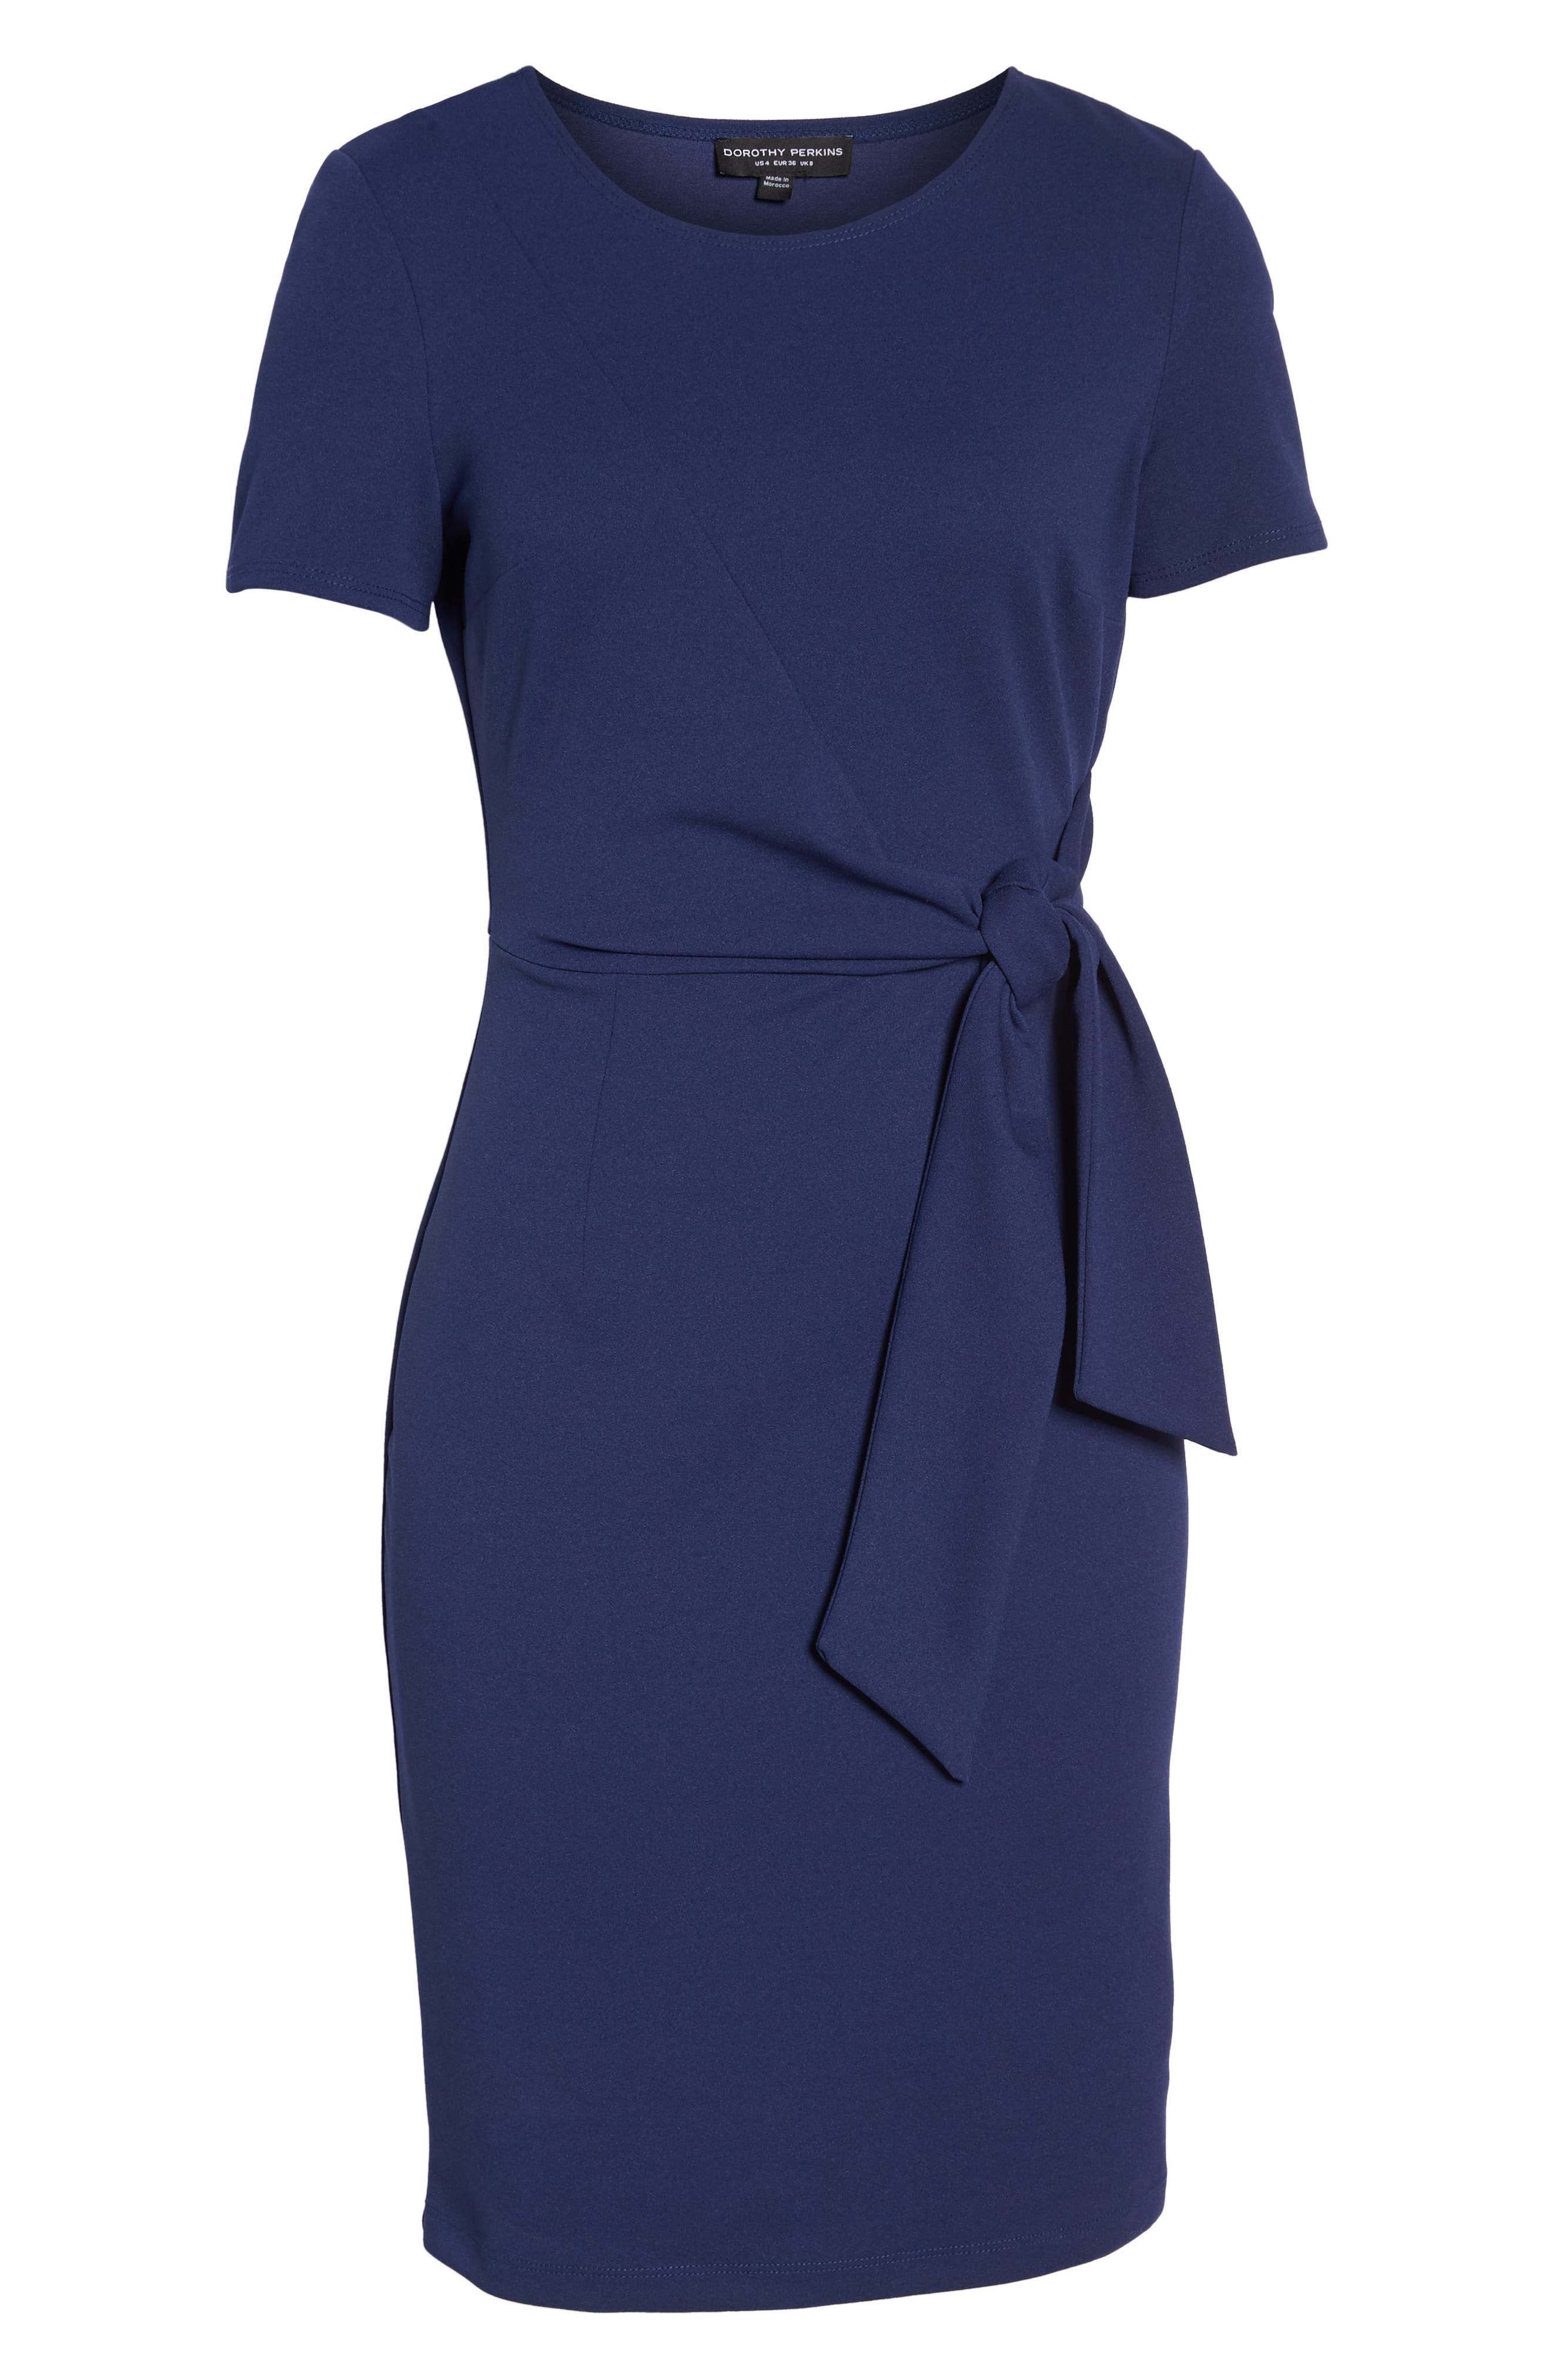 Tie Front Sheath Dress,                             Alternate thumbnail 7, color,                             400